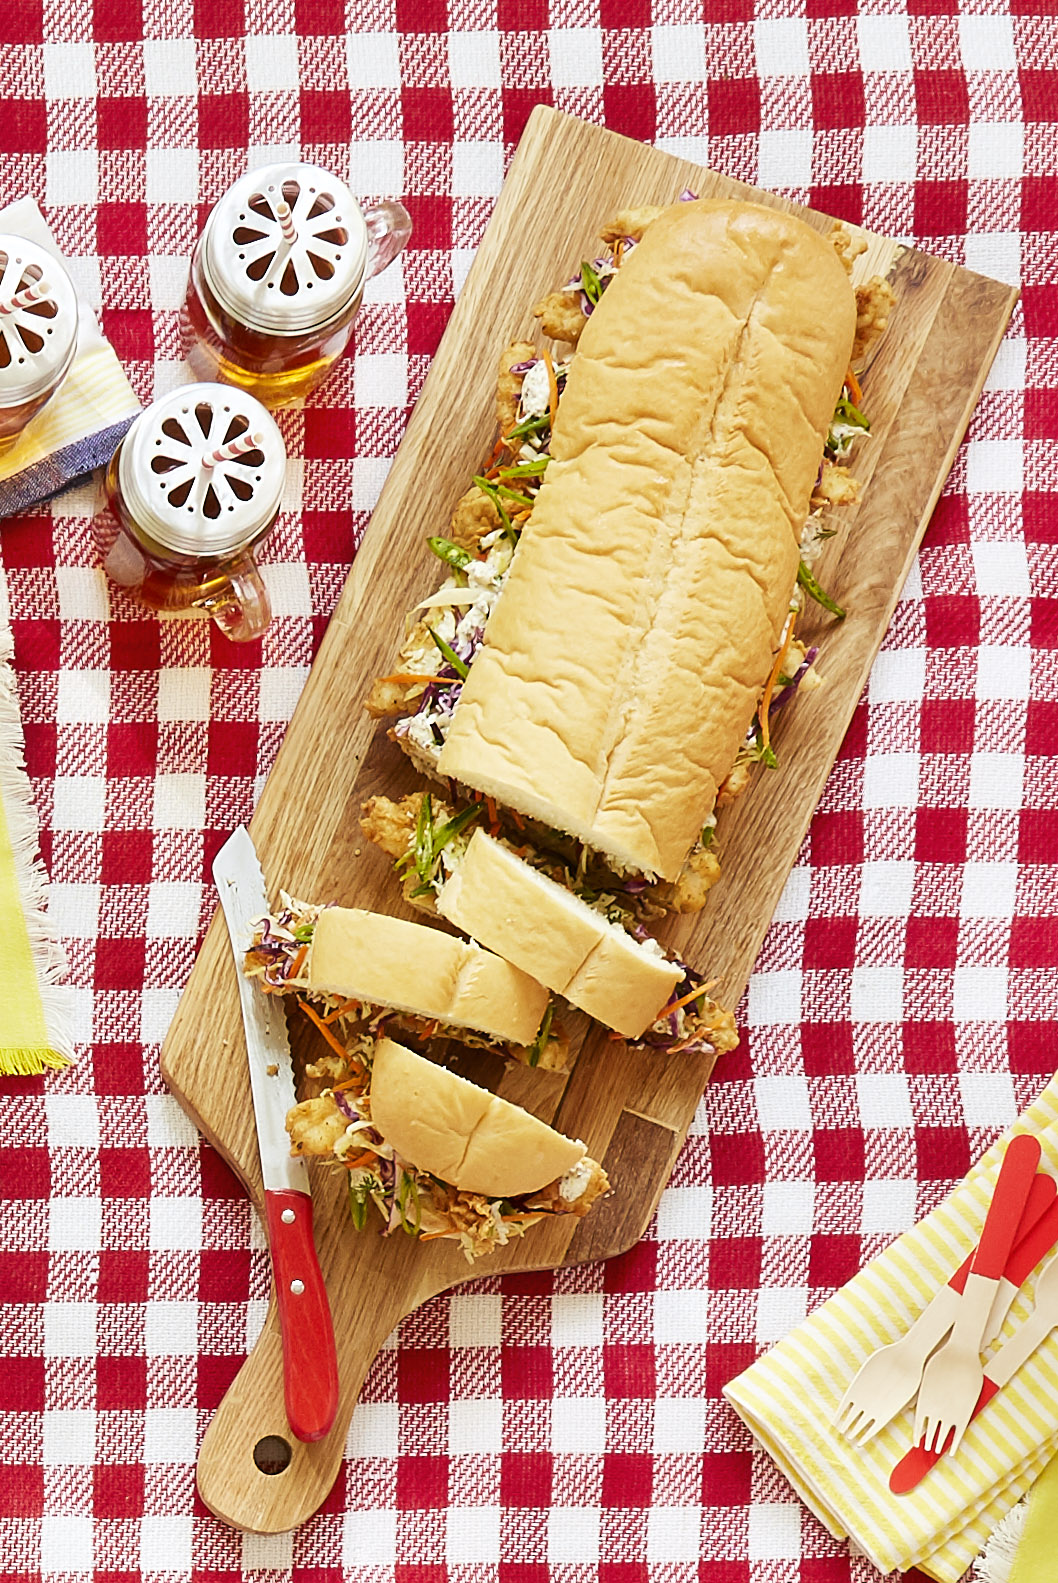 90+ Summer Picnic Recipes – Easy Food Ideas for a Summer ...